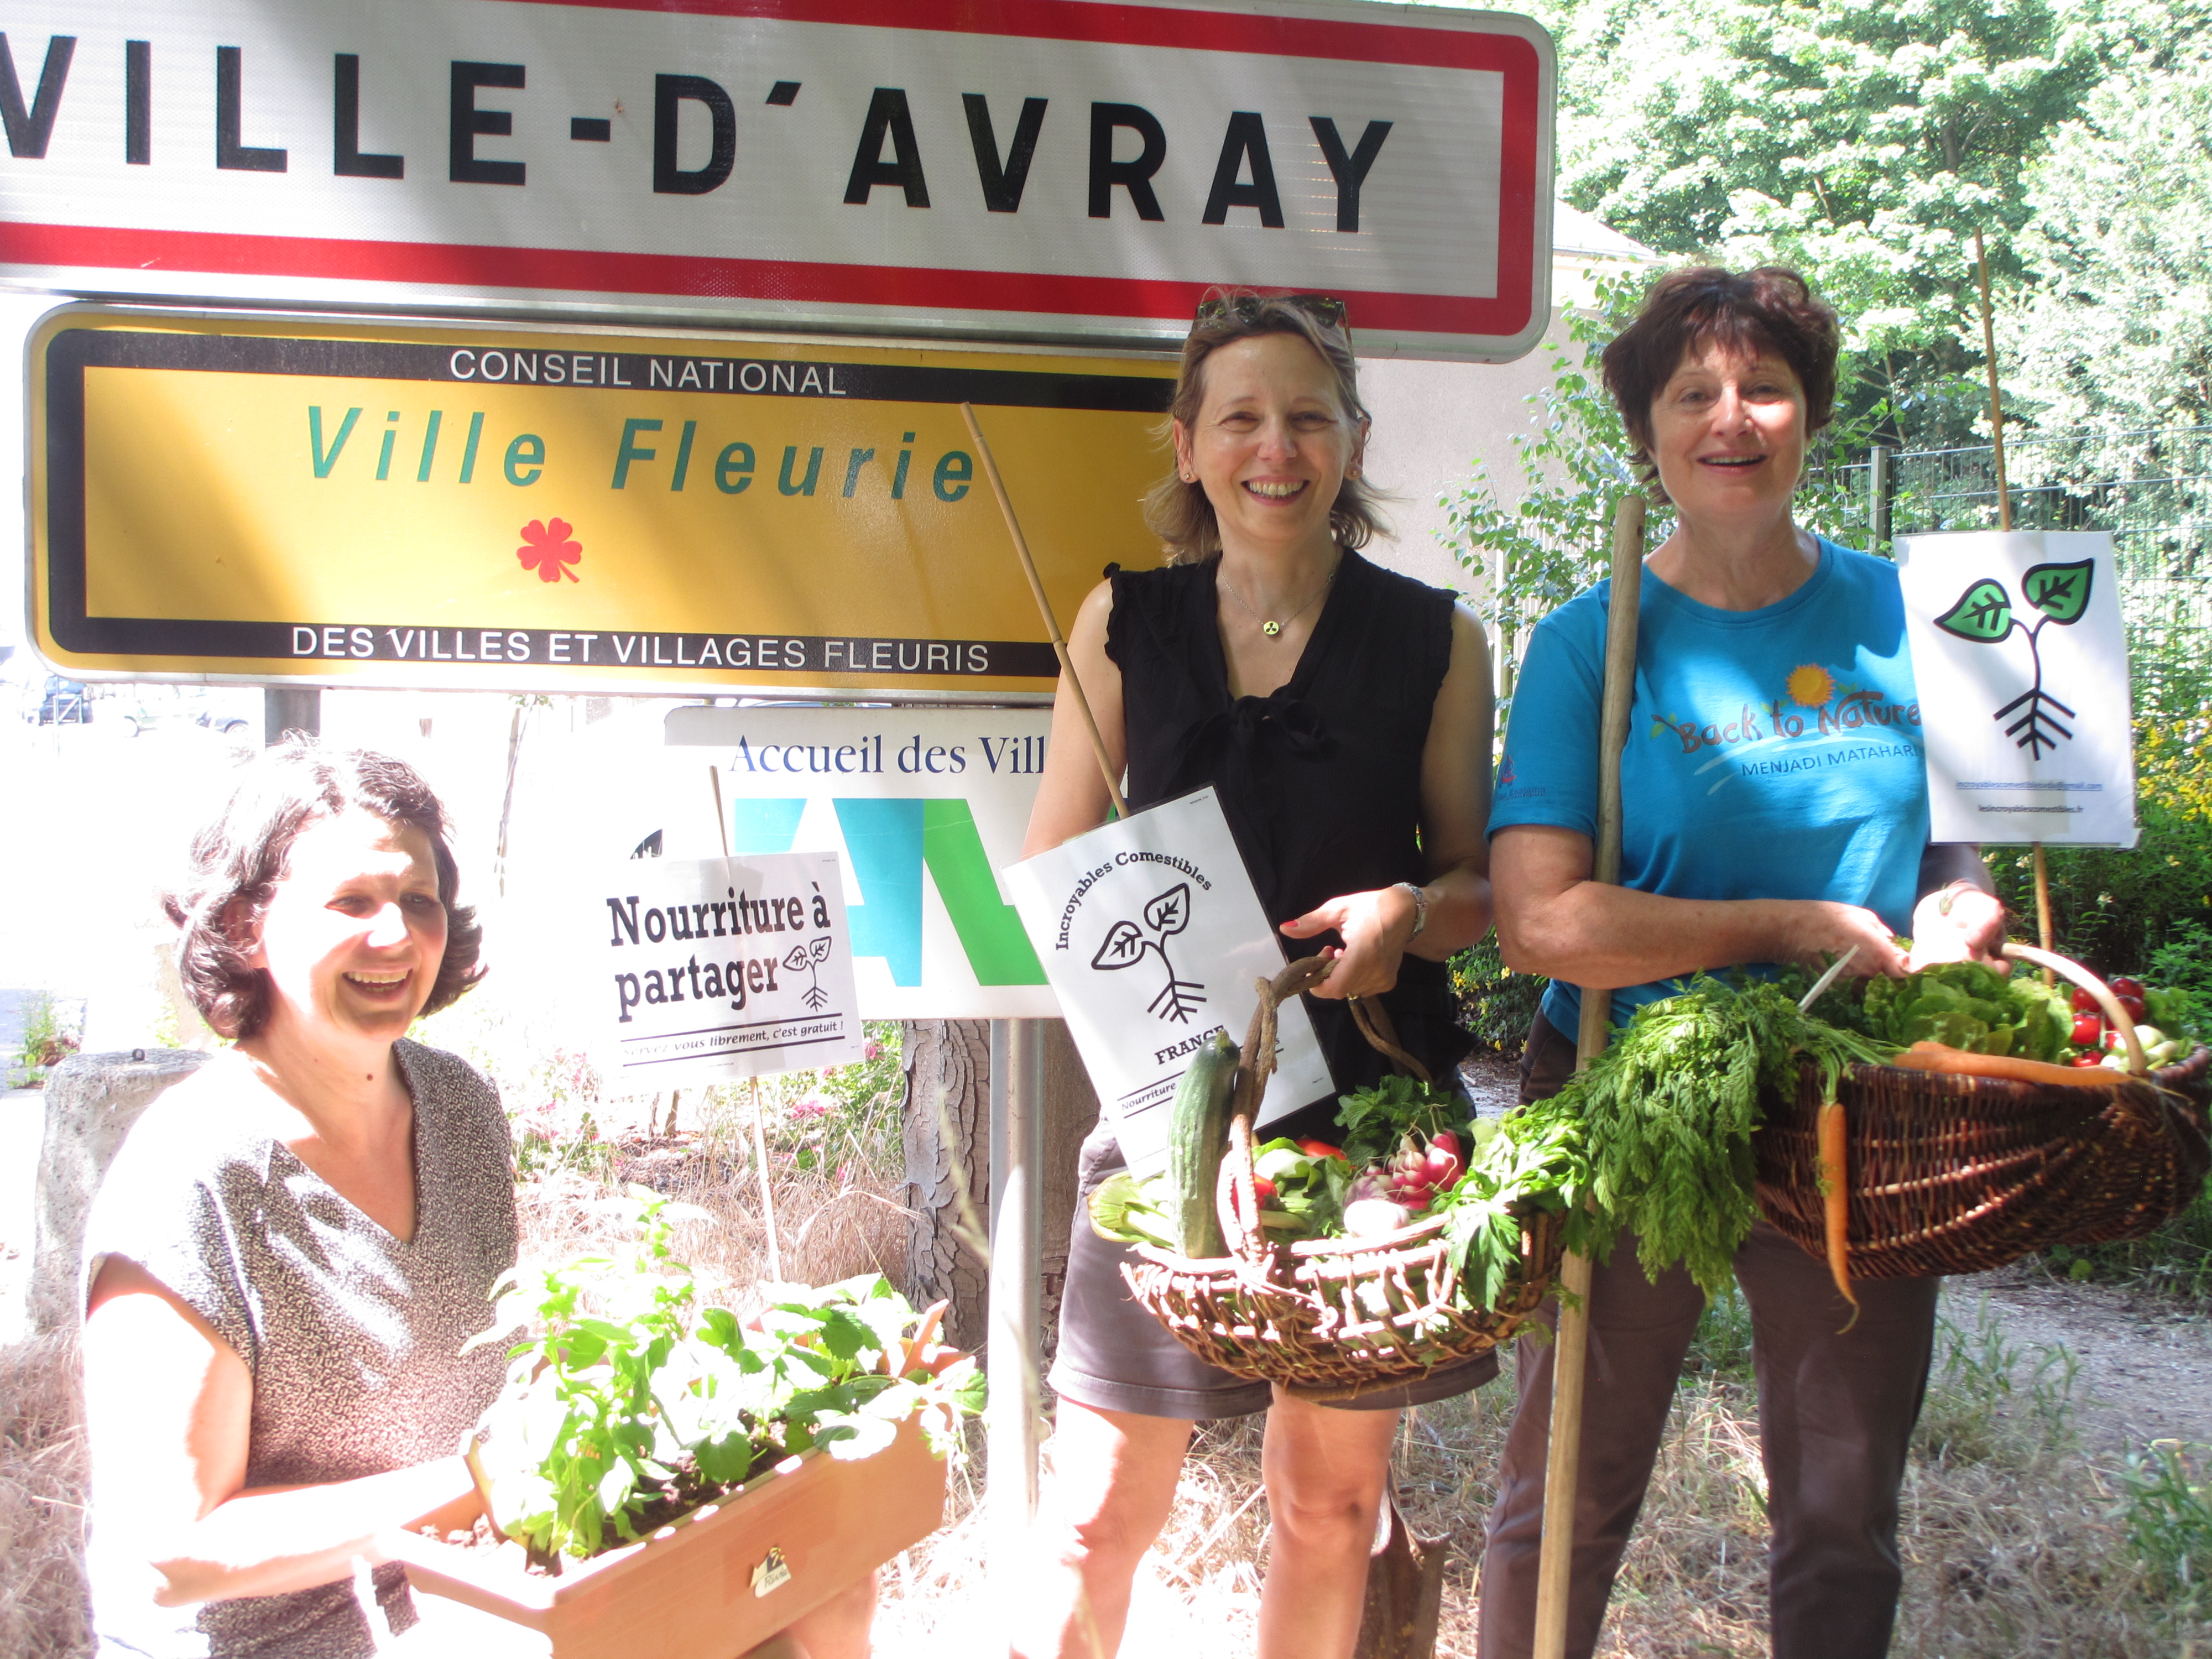 La photo officielle des Incroyables Comestibles Ville d'Avray